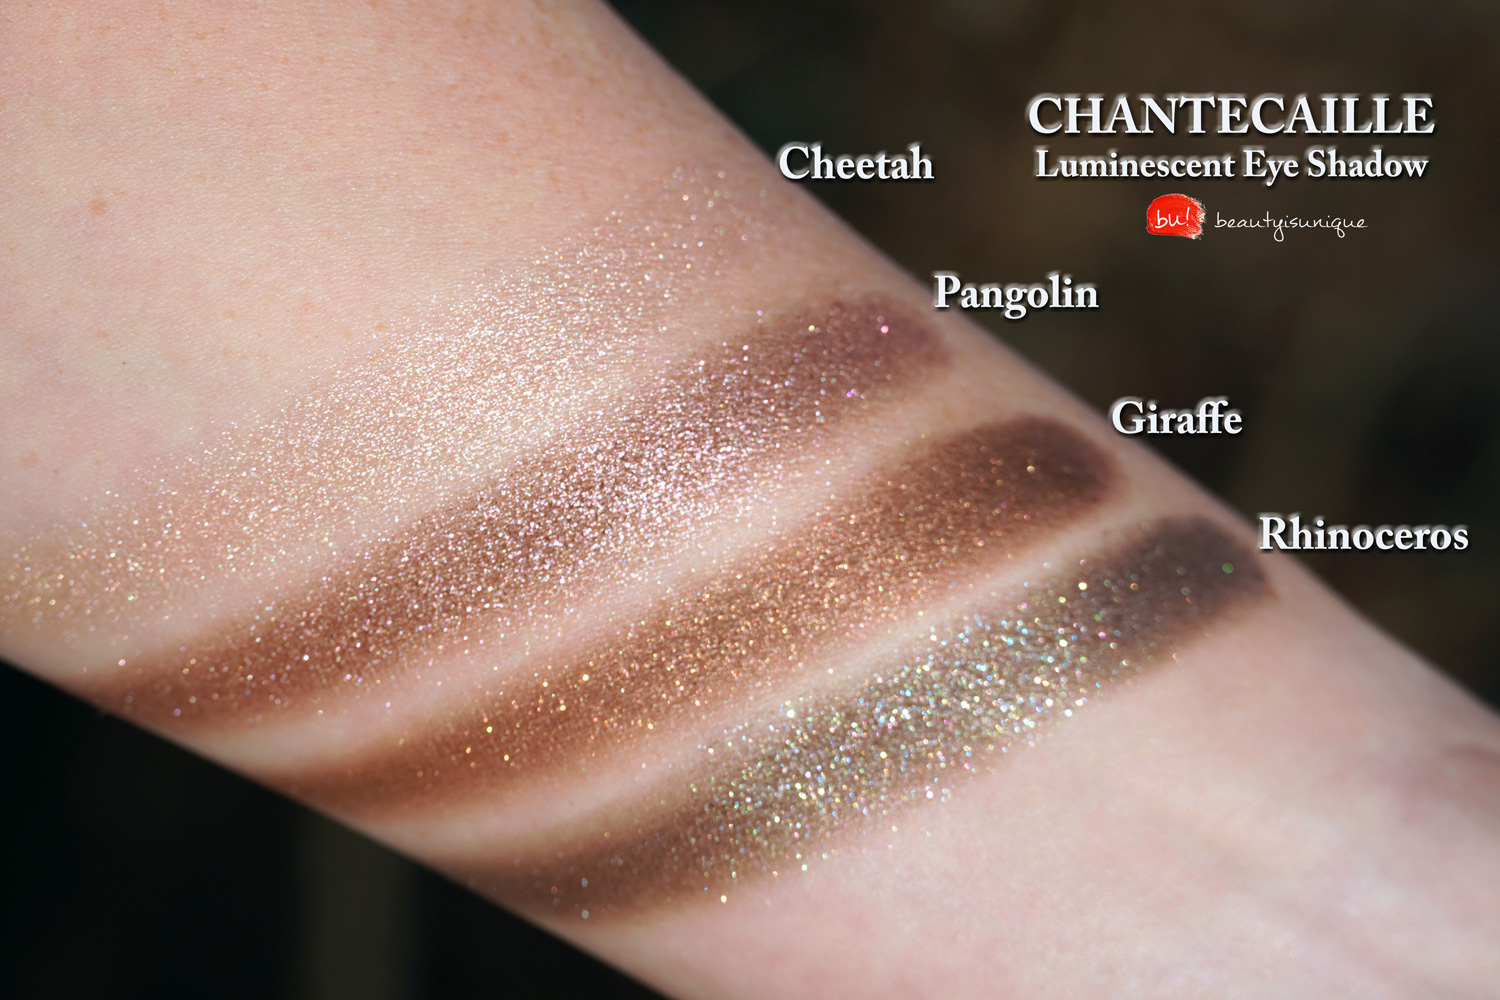 chantecaille-luminescent-eye-shadow-rhinoceros